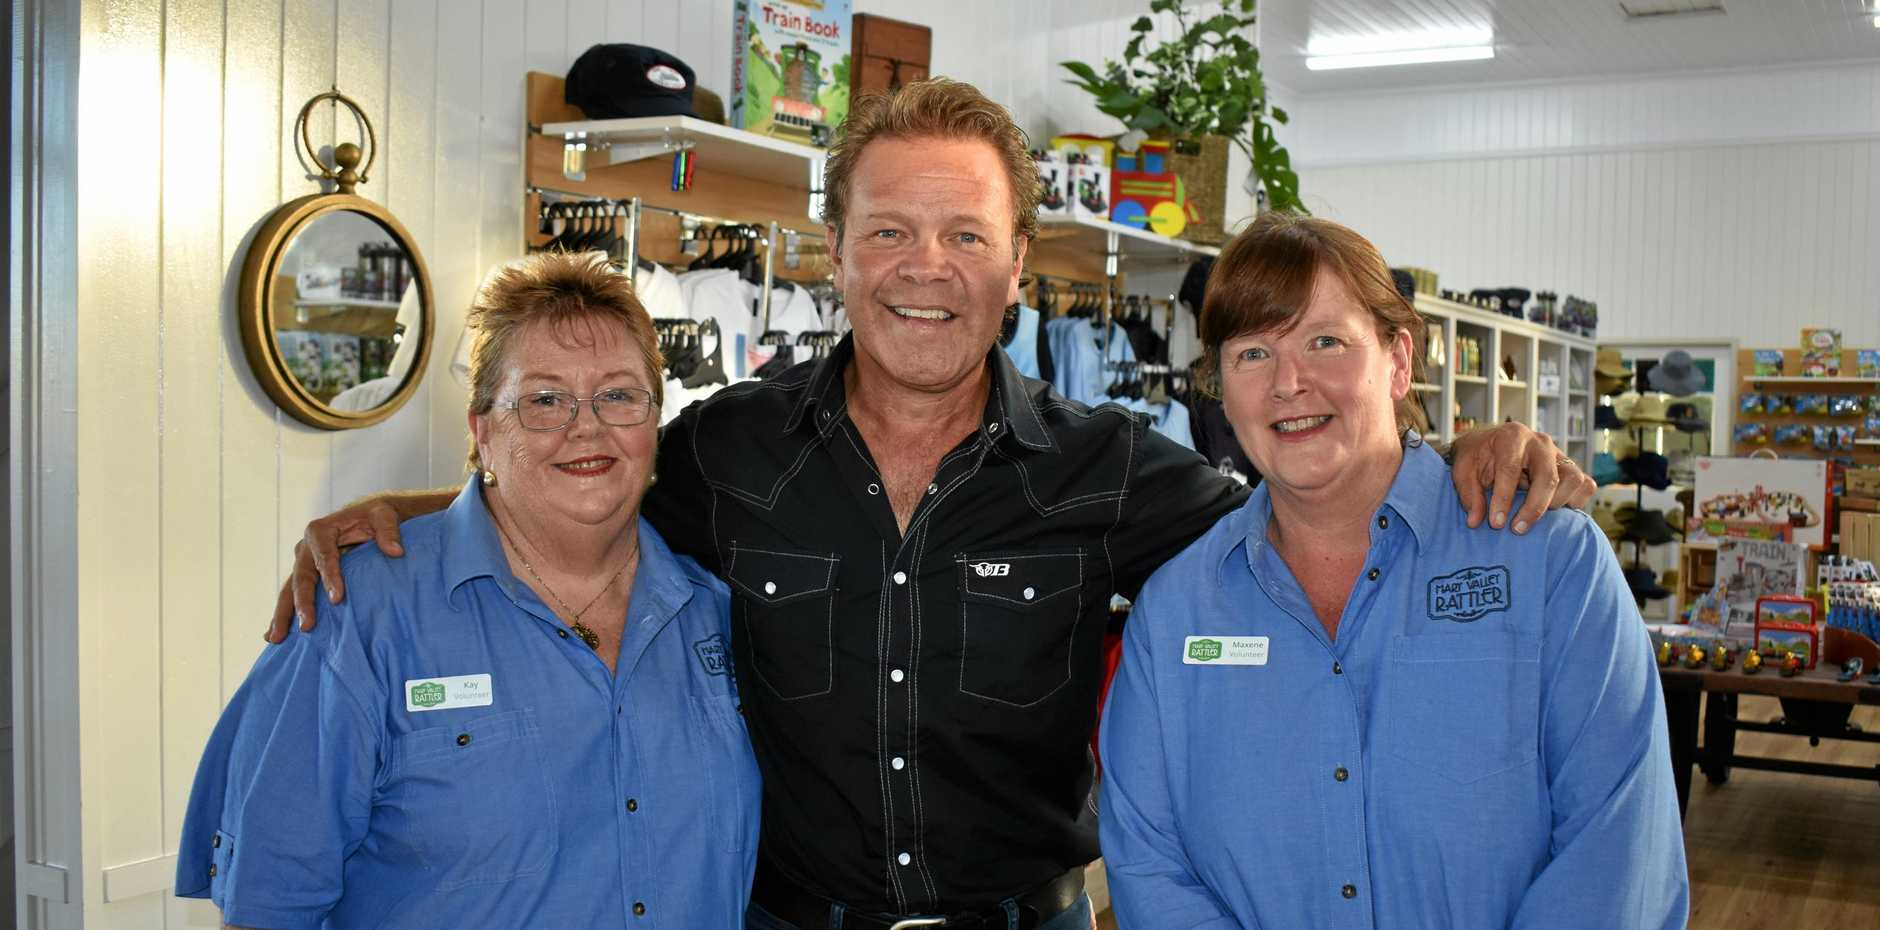 Rattler volunteers Kay Buckley (left) and Maxene Grewar with new Muster ambassador and recording artist Troy Cassar-Daley at the official 2018 Gympie Music Muster launch on Tuesday at the old Gympie station.